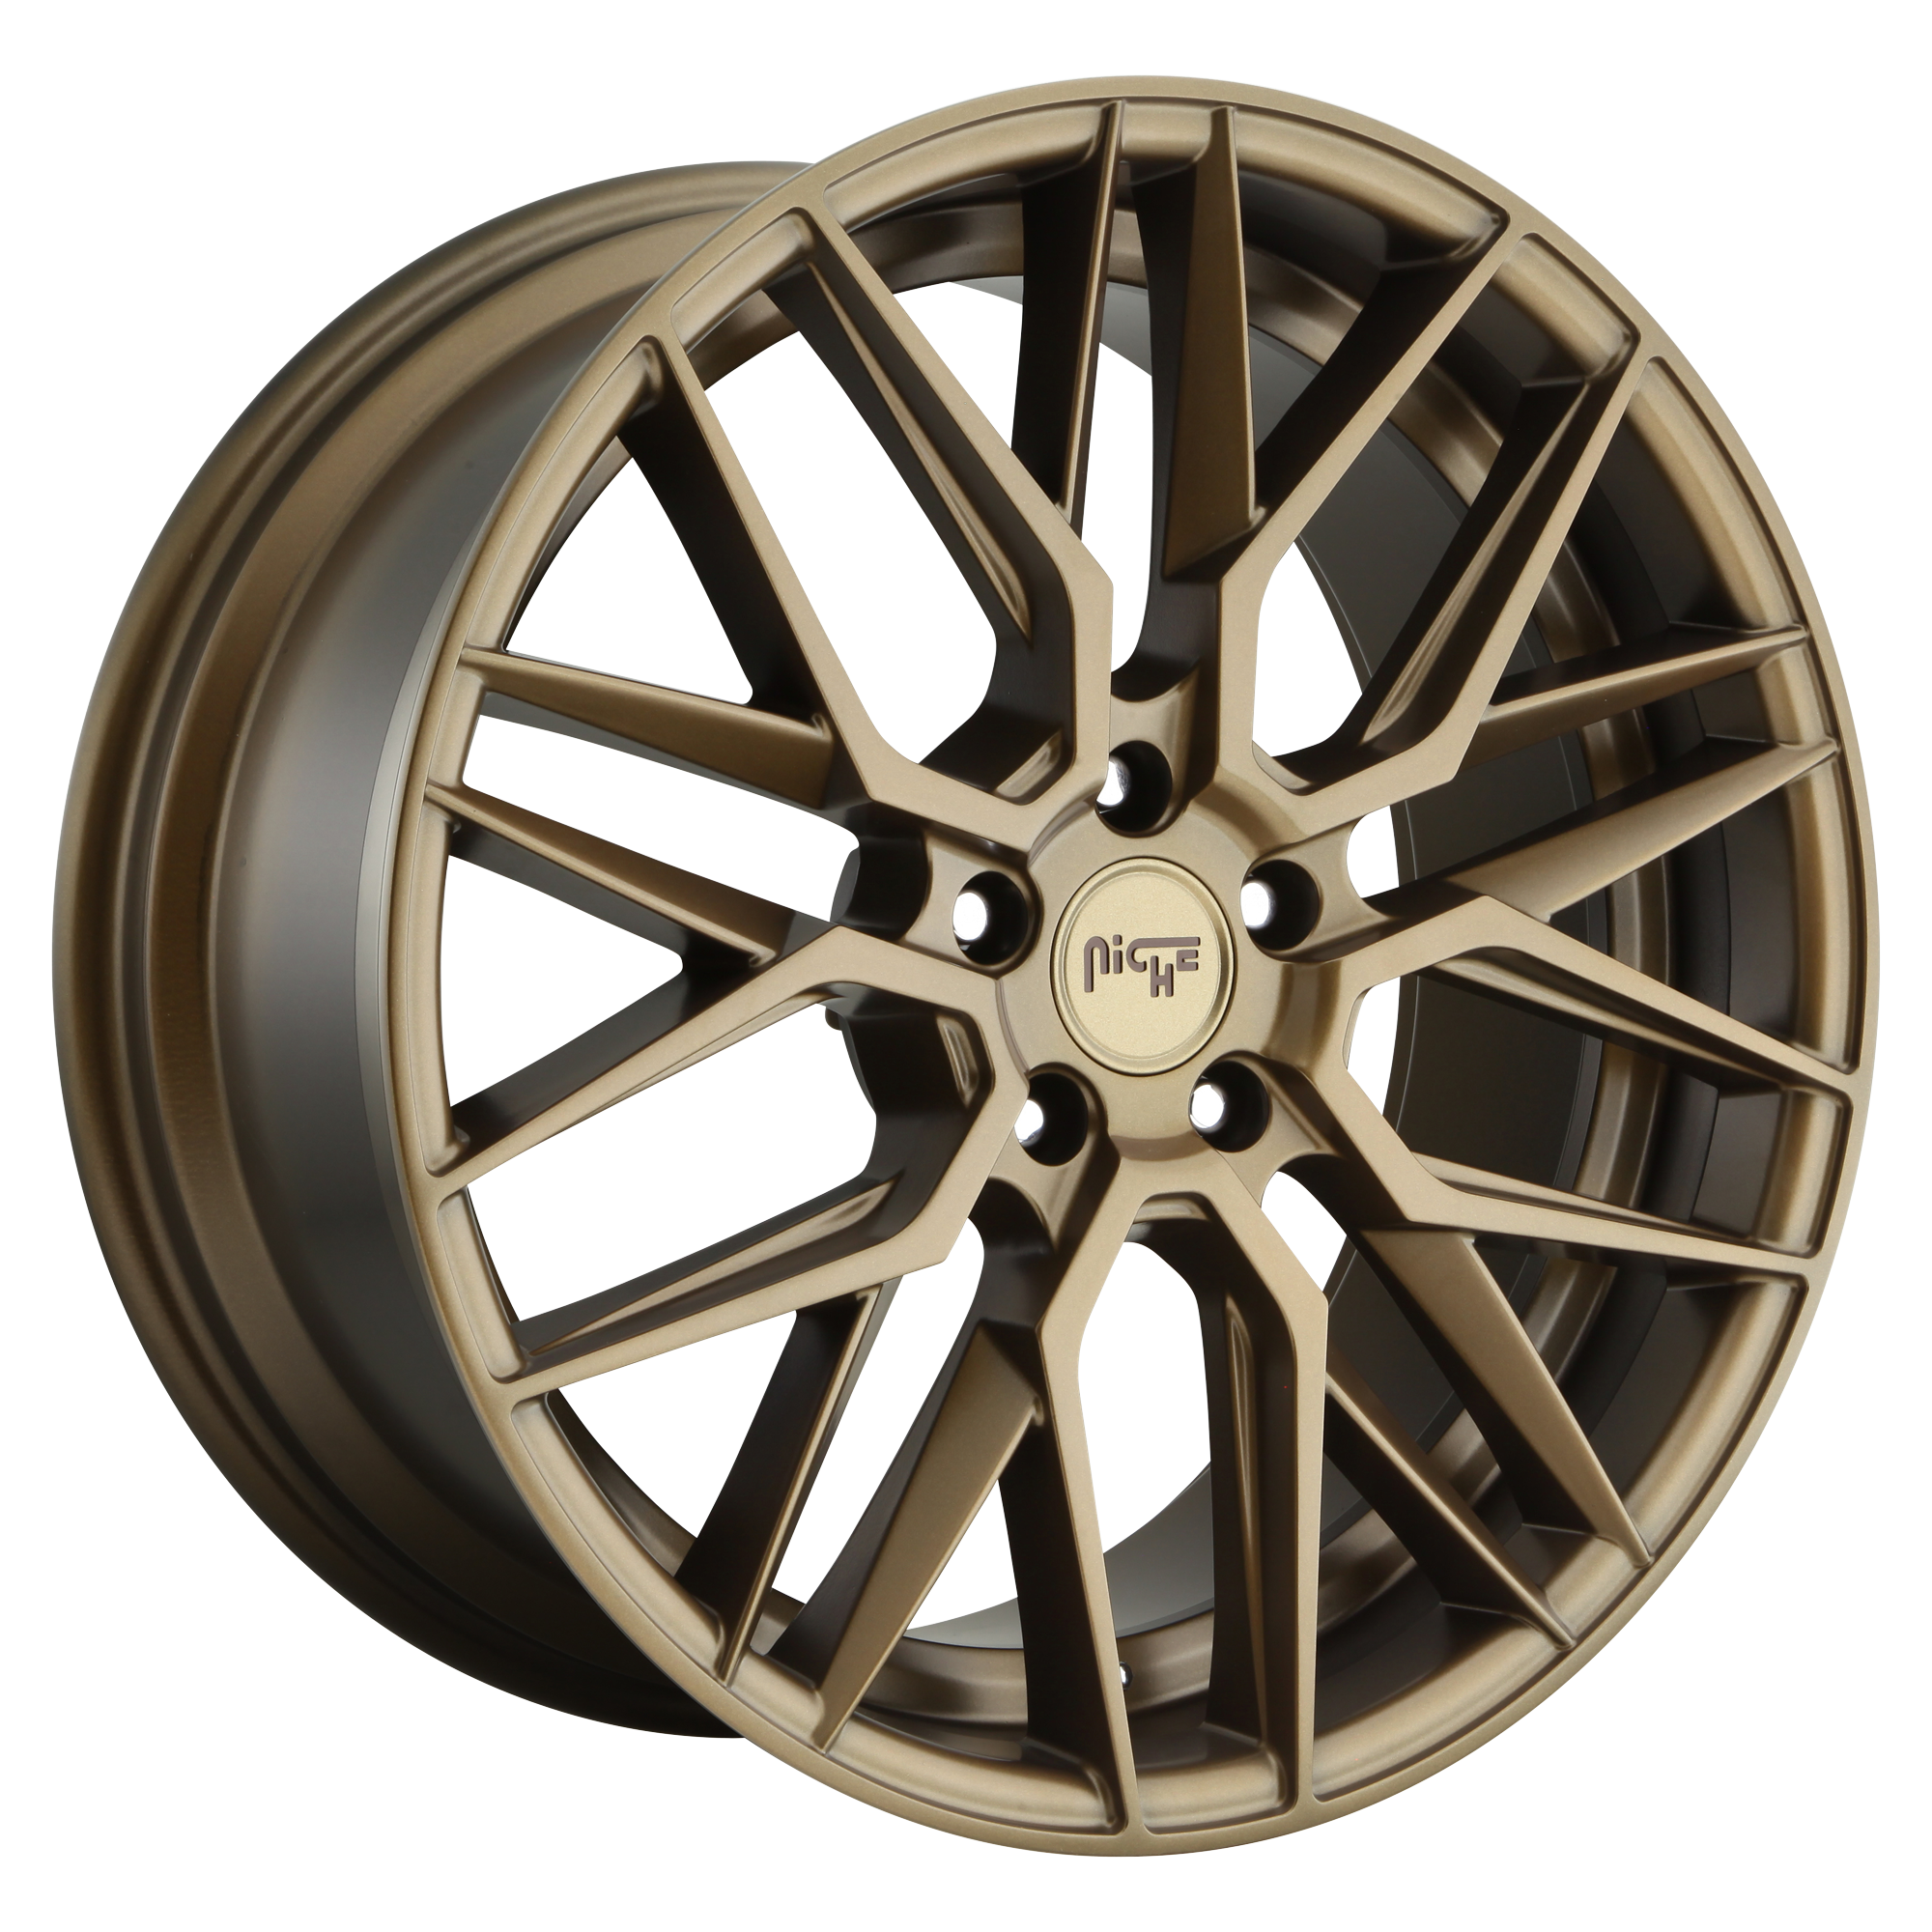 Gamma 19x9.5 5x120 Matte Bronze (40 mm)